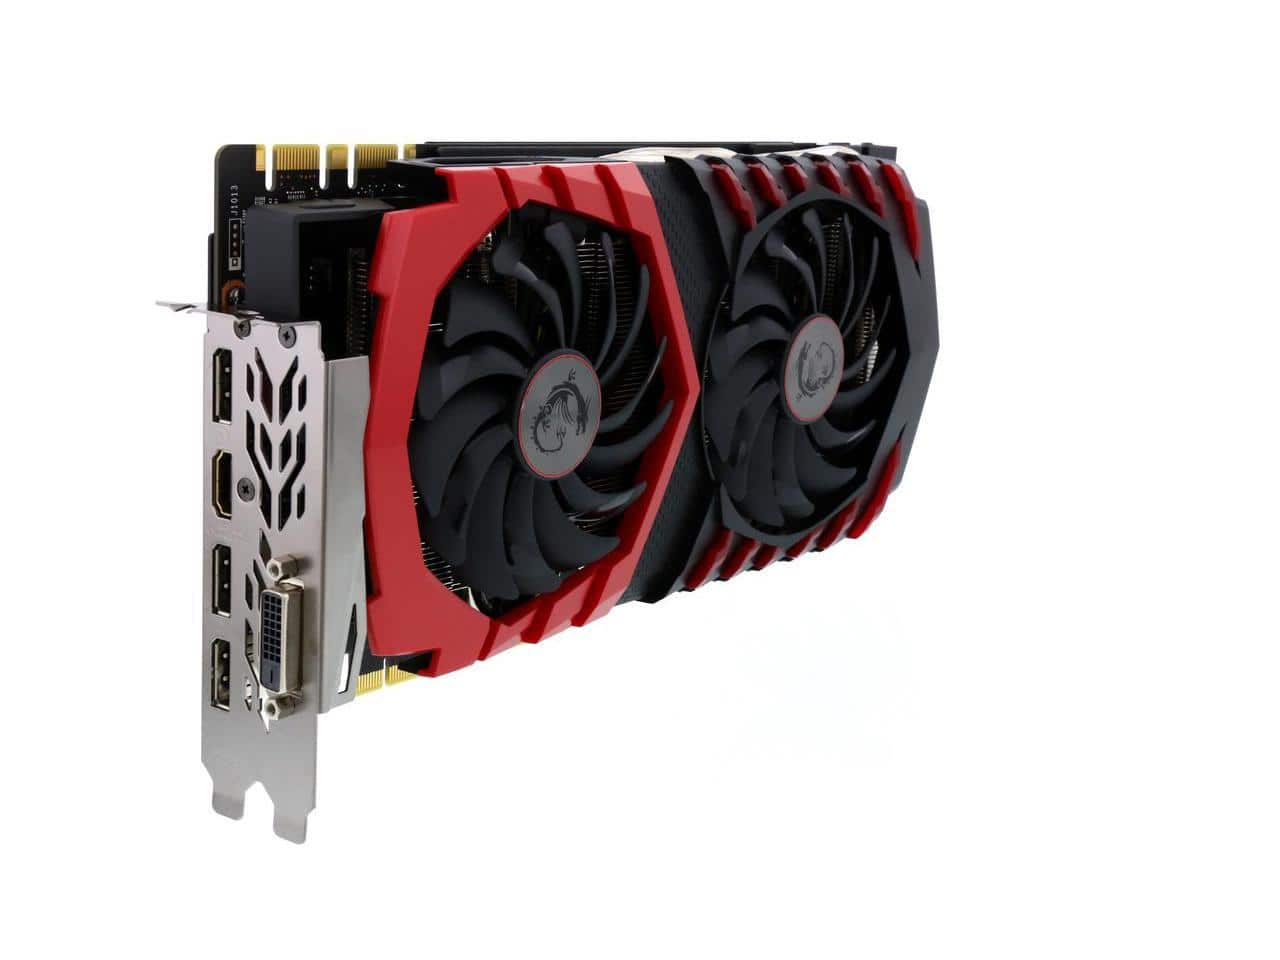 MSI GeForce GTX 1080 DirectX 12 GTX 1080 GAMING 8G 8GB $650-   OUT OF STOCK